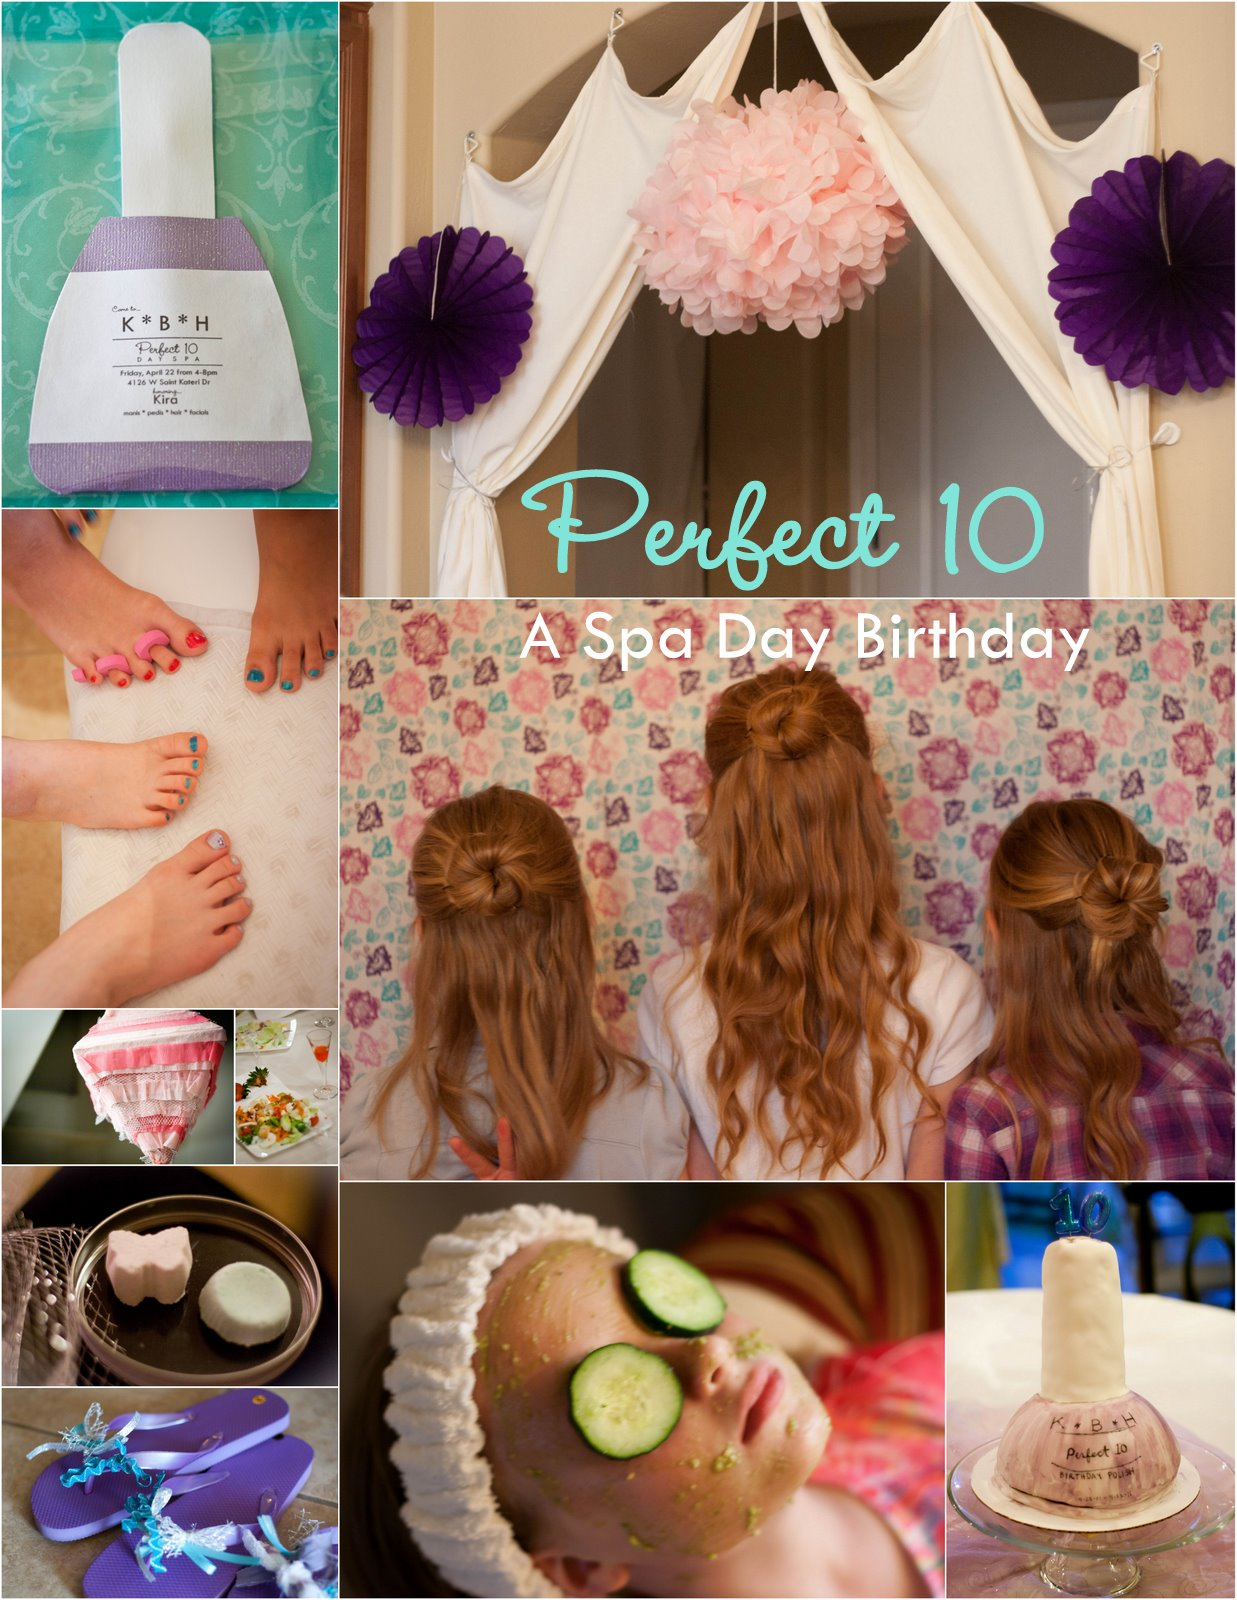 Craft ideas for 9 year old girls - Party Craft Ideas For 9 Year Olds 10 Year Old Girl Crafts Spa Day Birthday